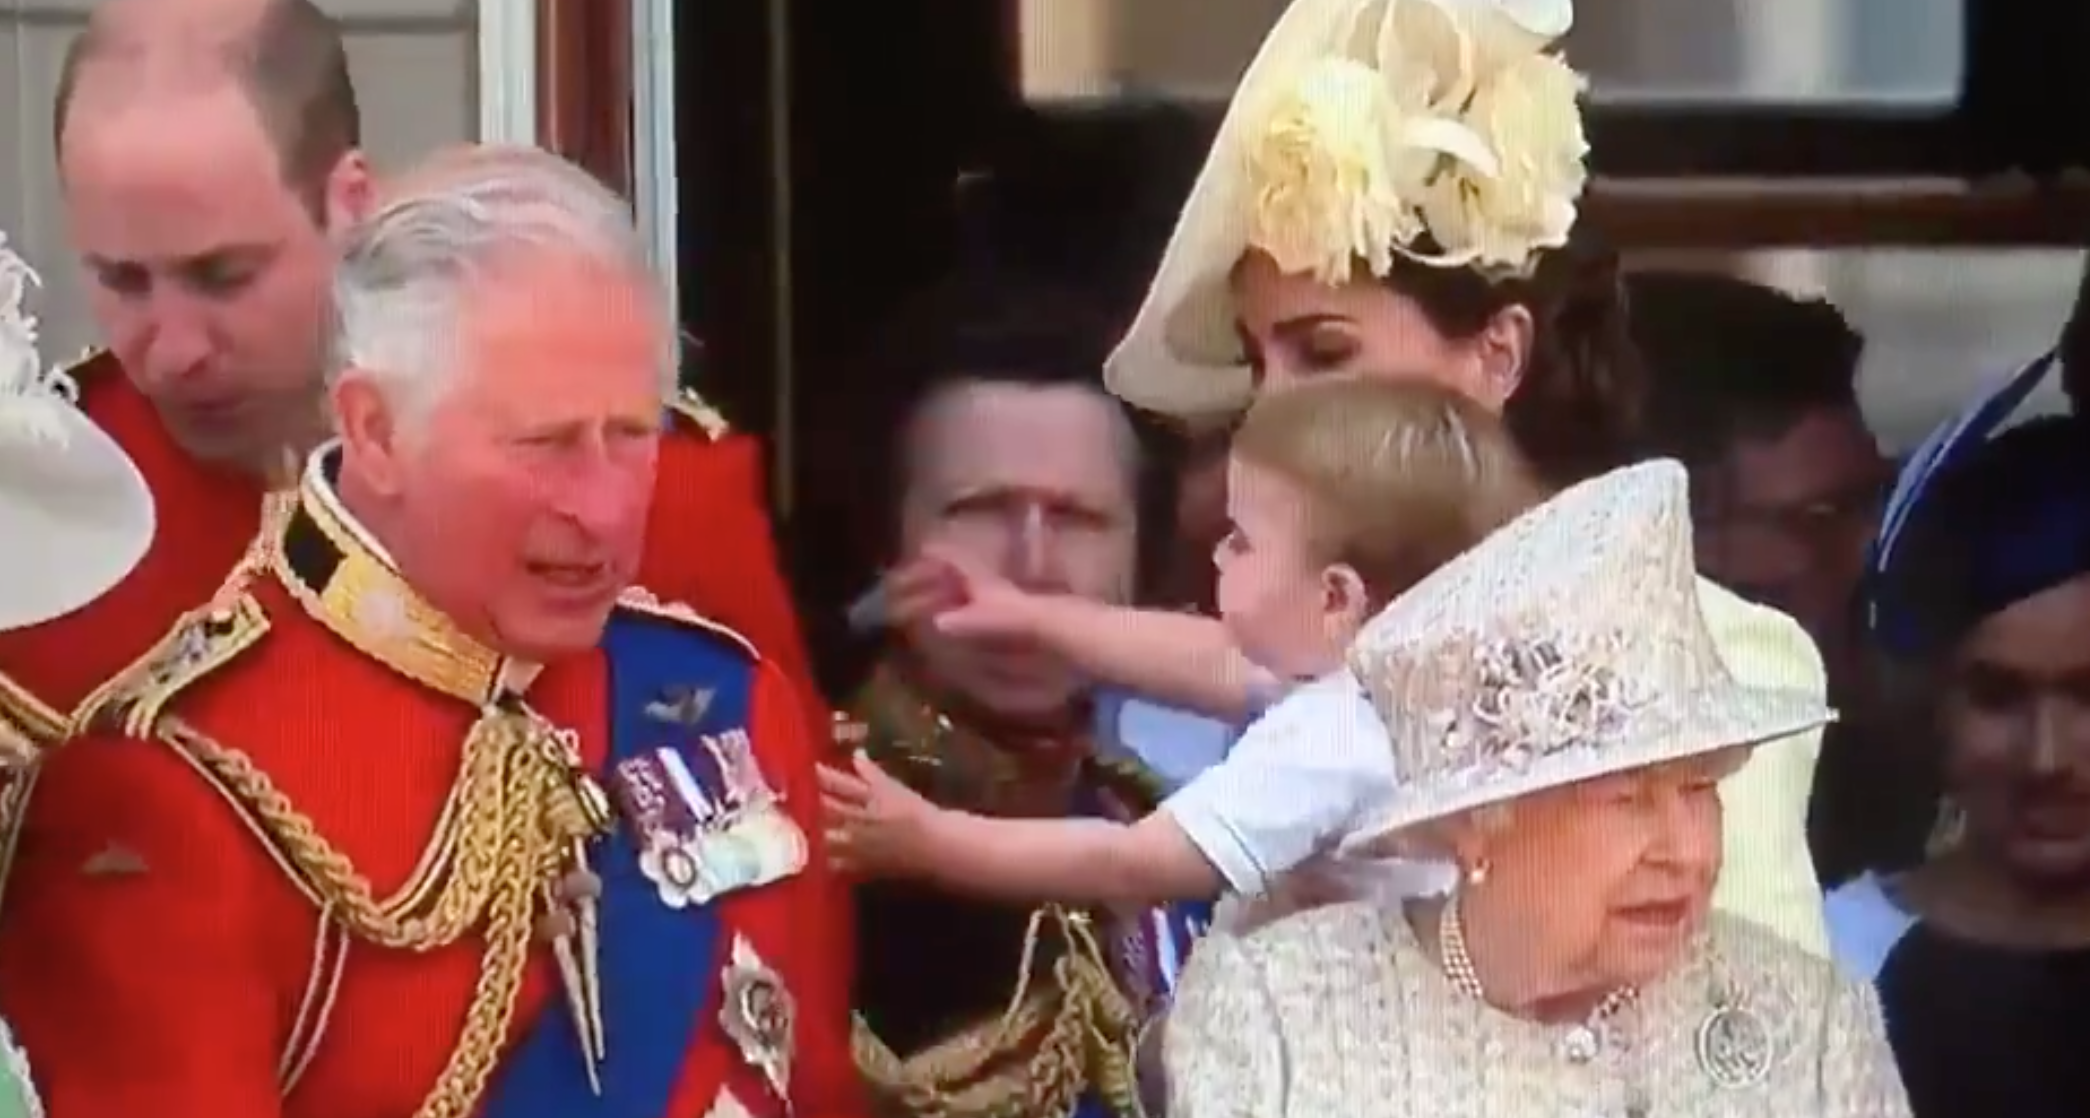 Prince Louis Kept Reaching for William at 2019 Trooping the